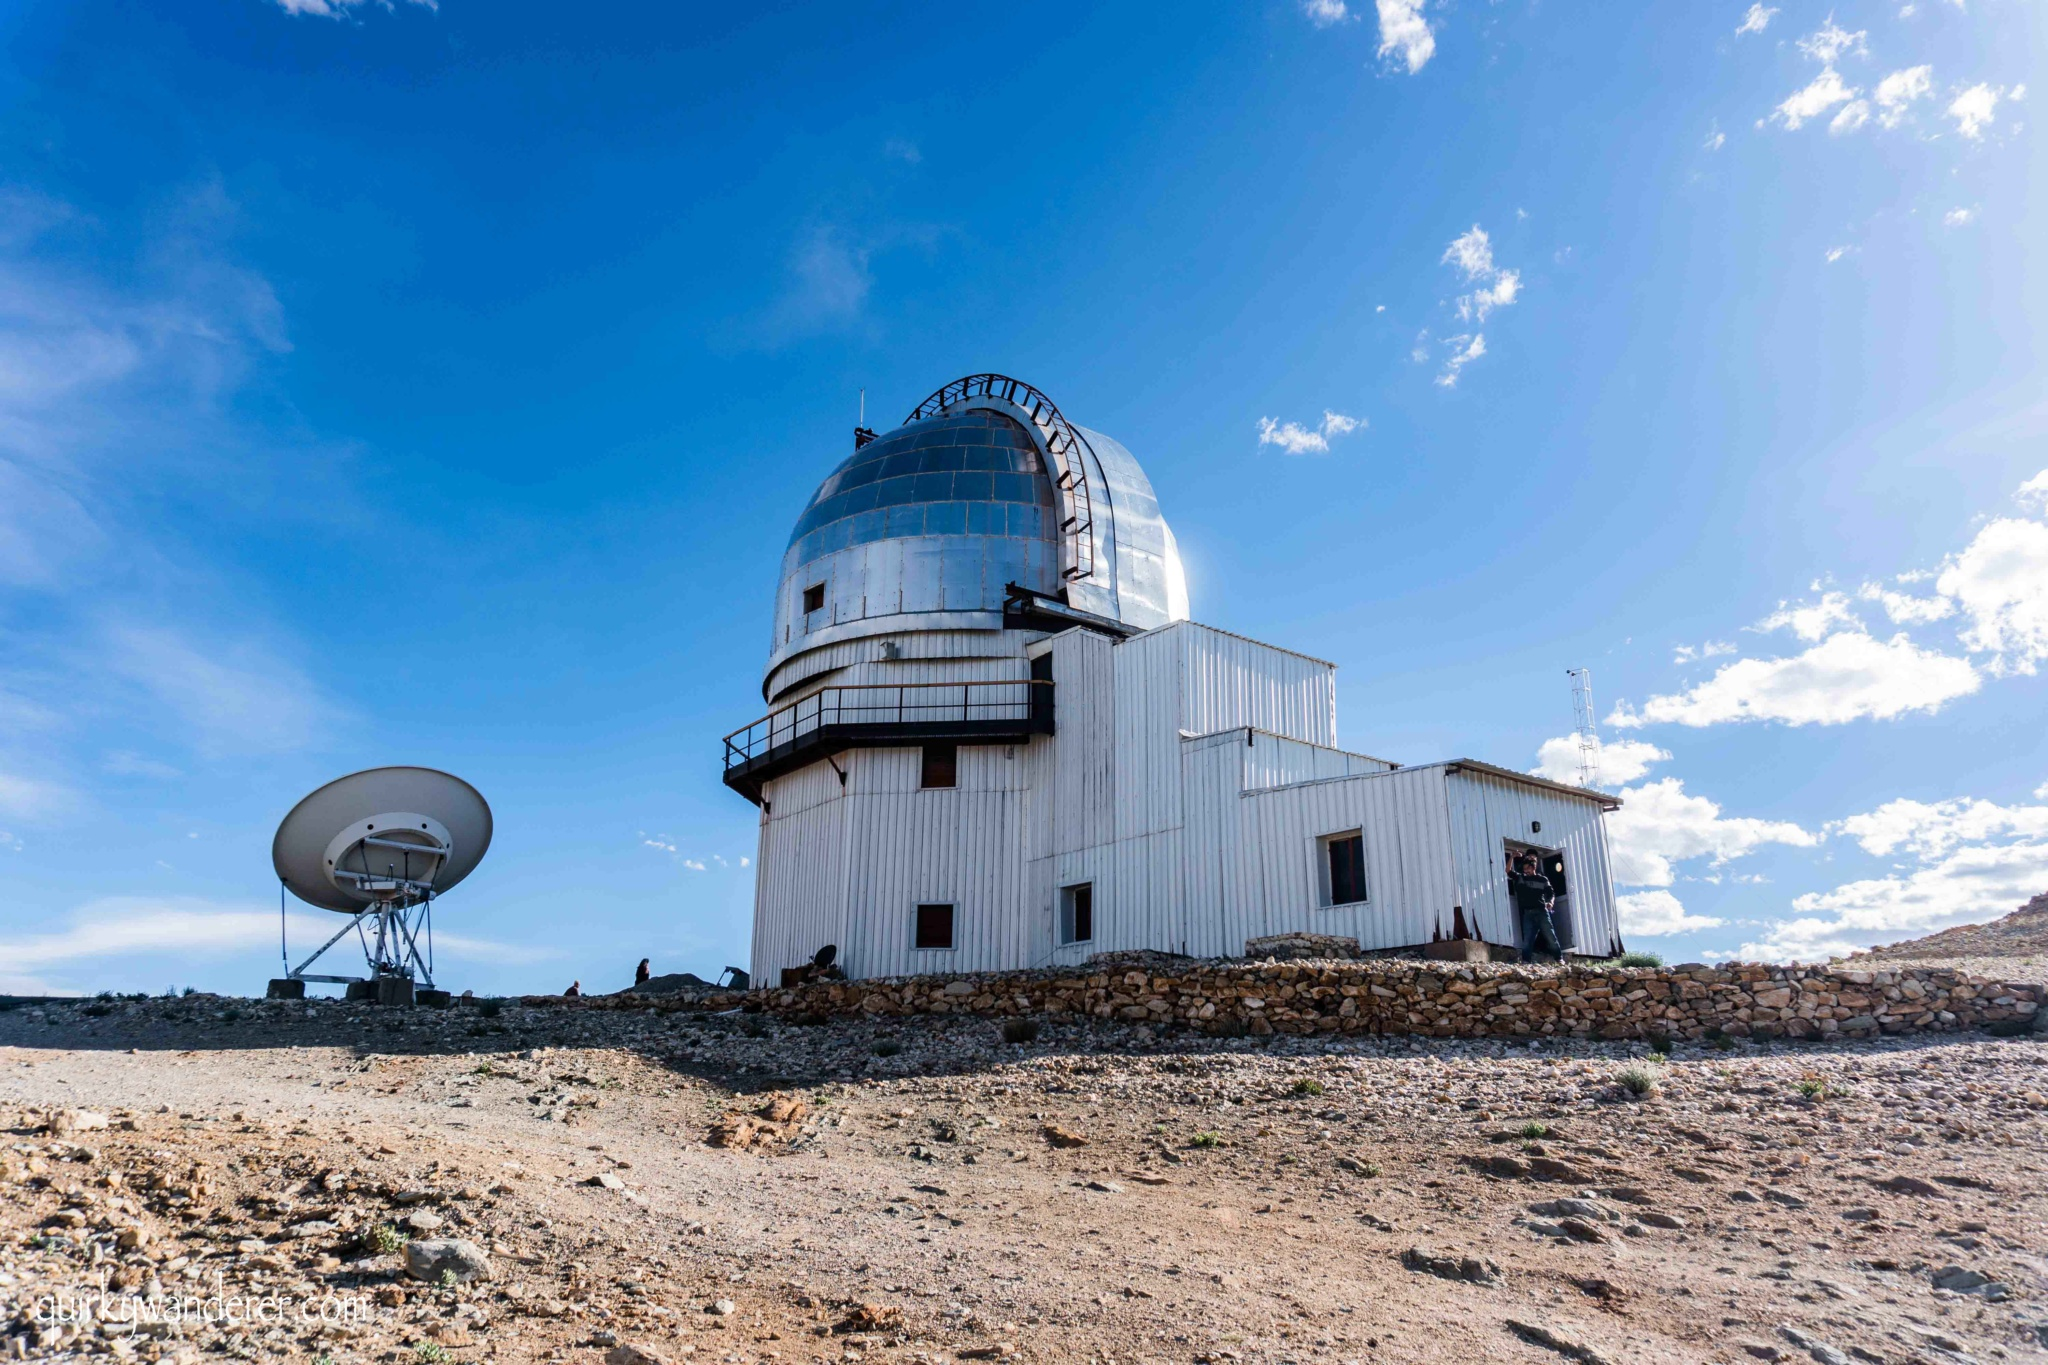 The Indian Astronomical Observatory at Hanle